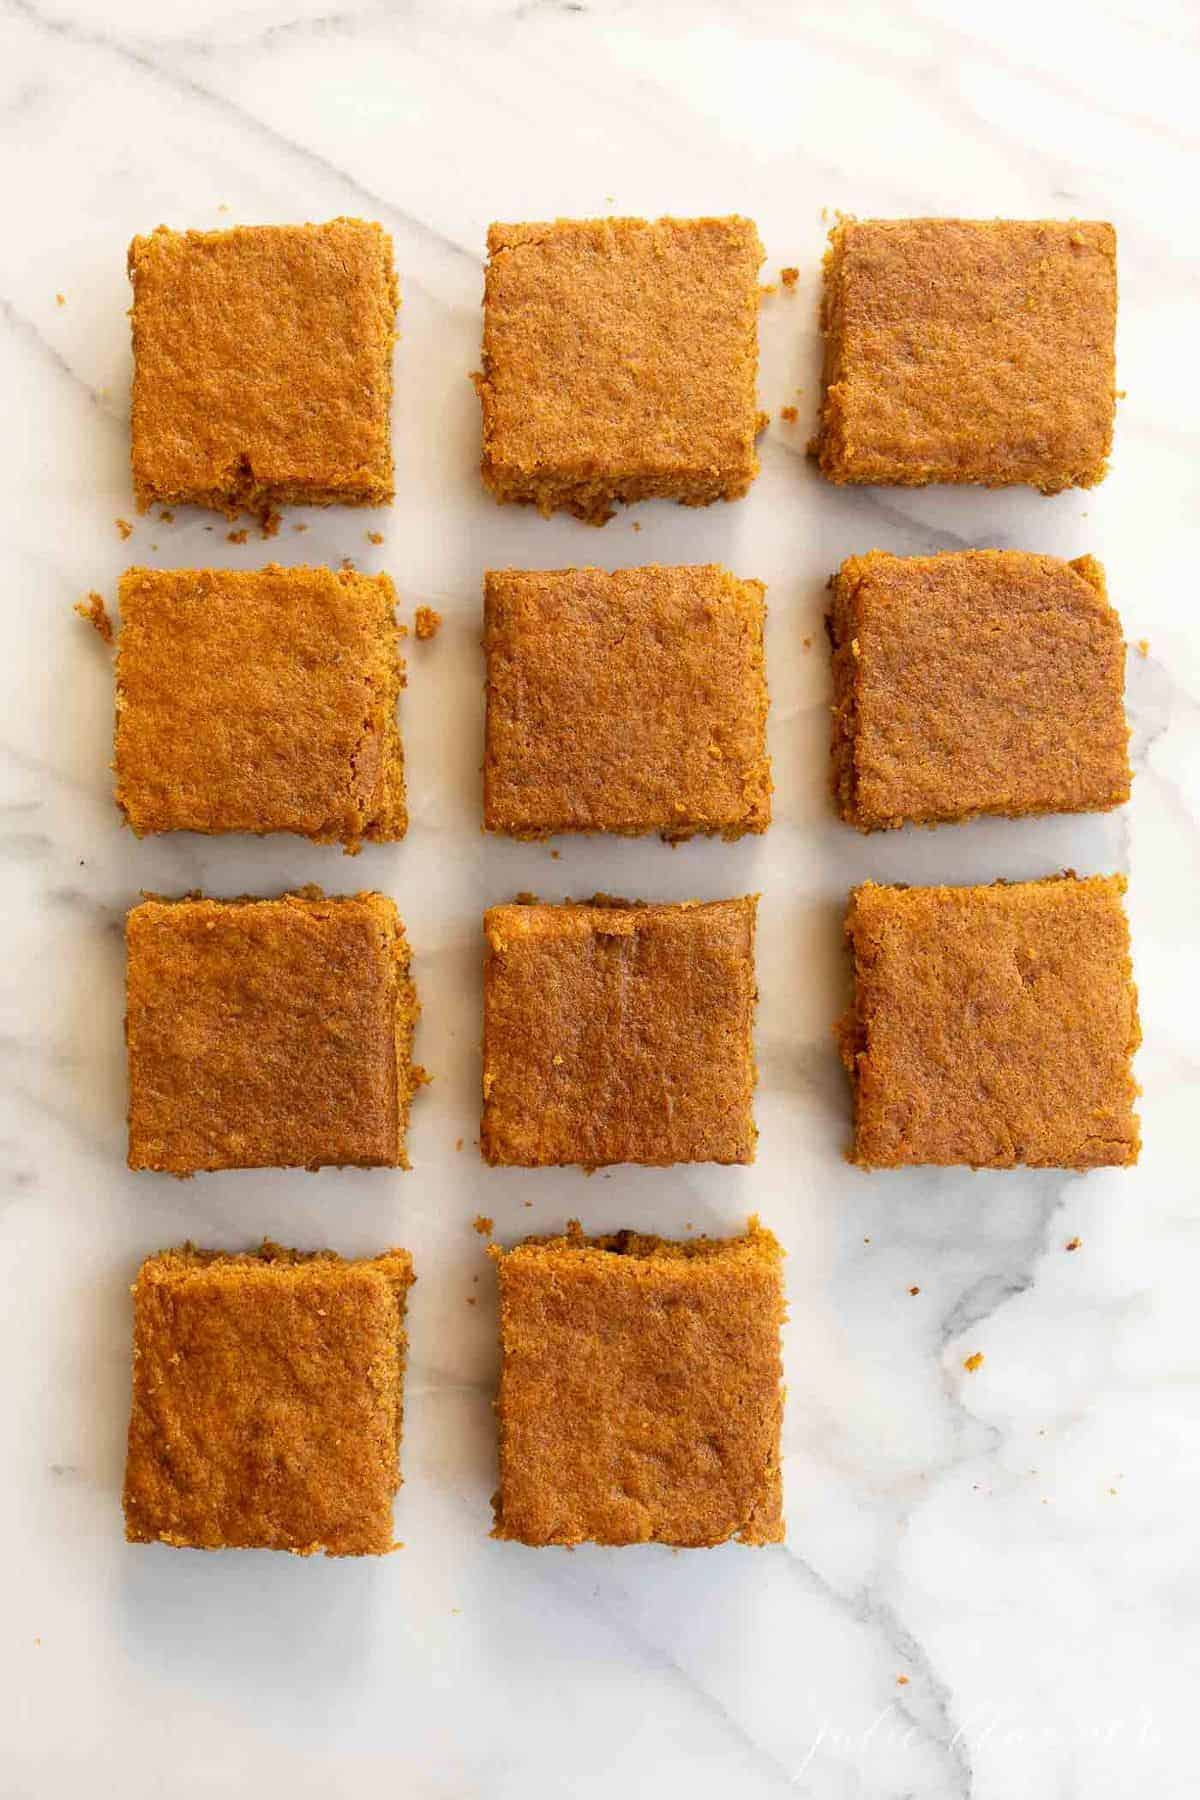 Marble surface with cut pumpkin bars placed neatly together.